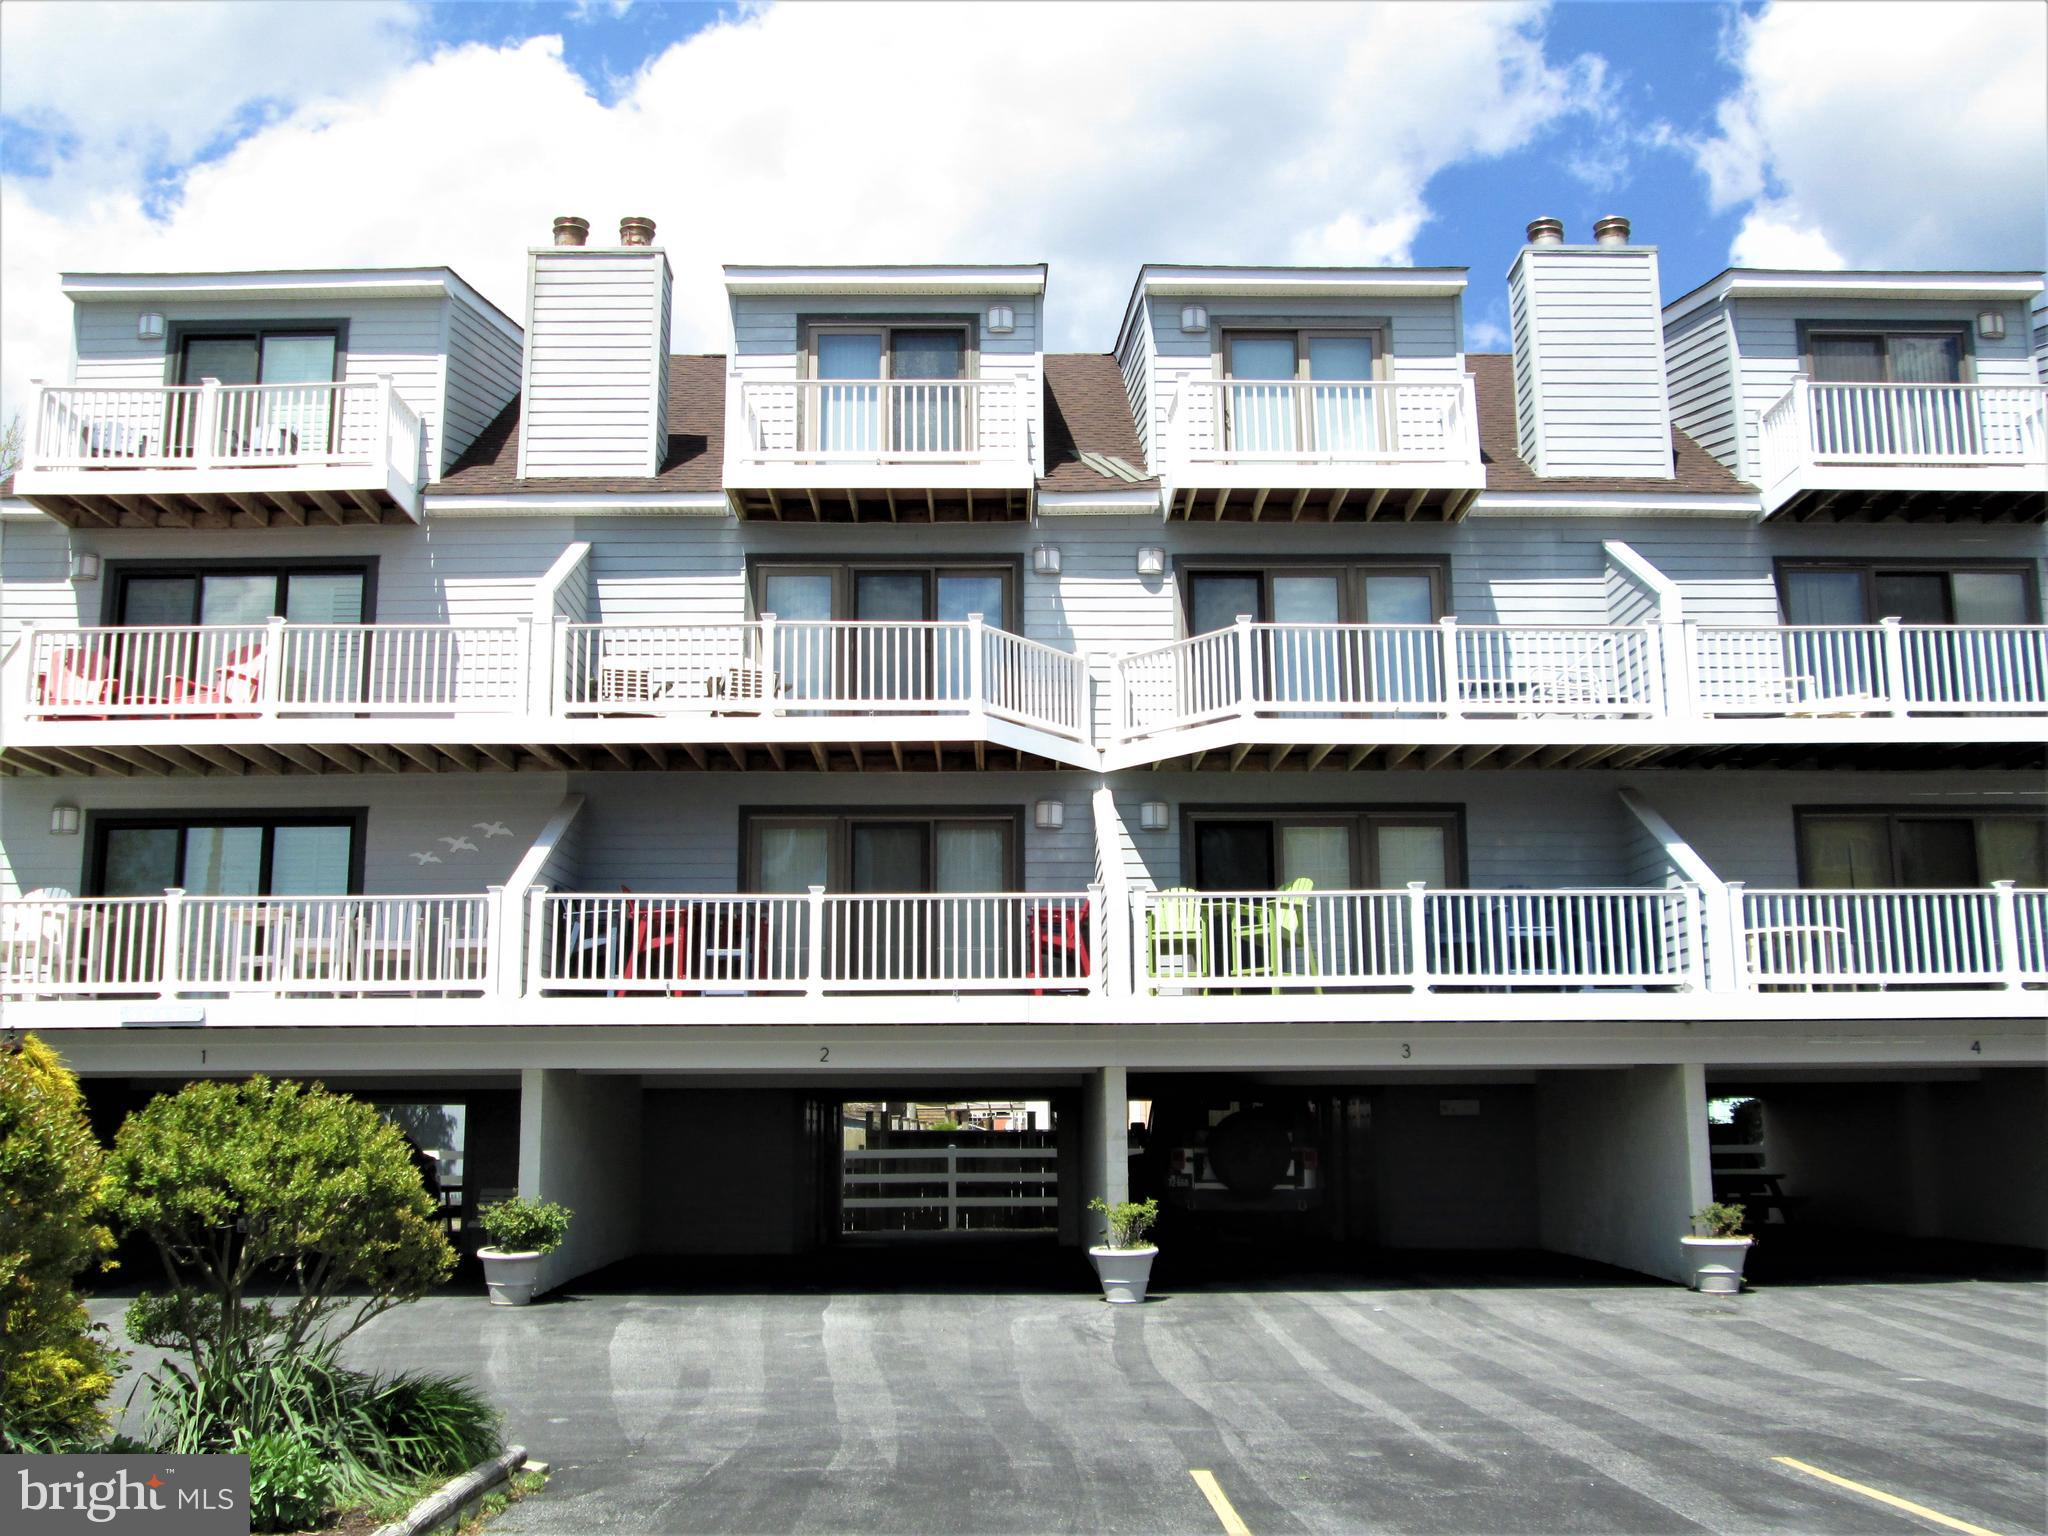 Beautiful unit with 3 Br. 3.5 Ba. possible addition of a 4th Br.  Recently upgraded and is beautiful inside.  Short walk to the lifeguarded beach in Fenwick Island. These units rarely come on the market.